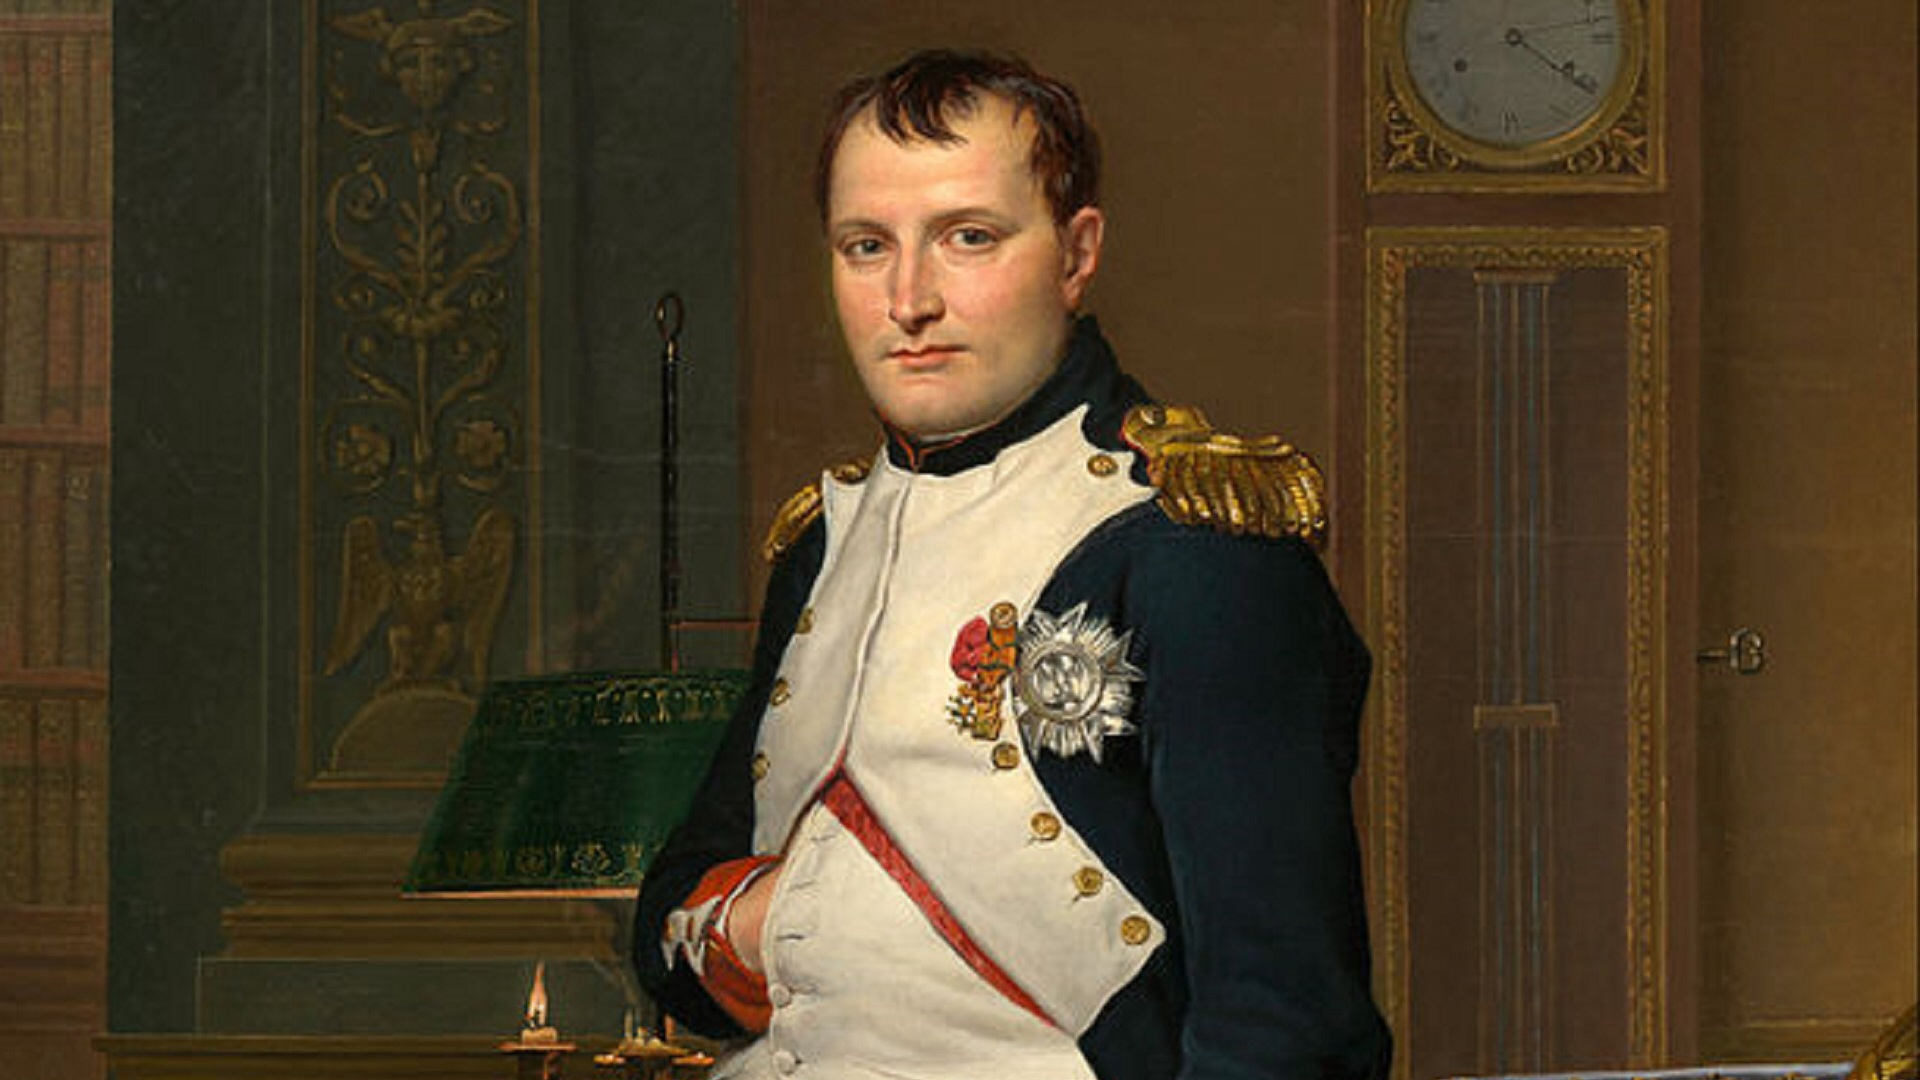 napoleon becoming a tyrant Was napoleon an enlightened ruler or a tyrant (a) napoleon was one of the greatest rulers who ever lived napoleon was typical of the enlightenment in 1799, the directory fall, and napoleon became the first consul in the new government of consulat, which brought political stability to france by.